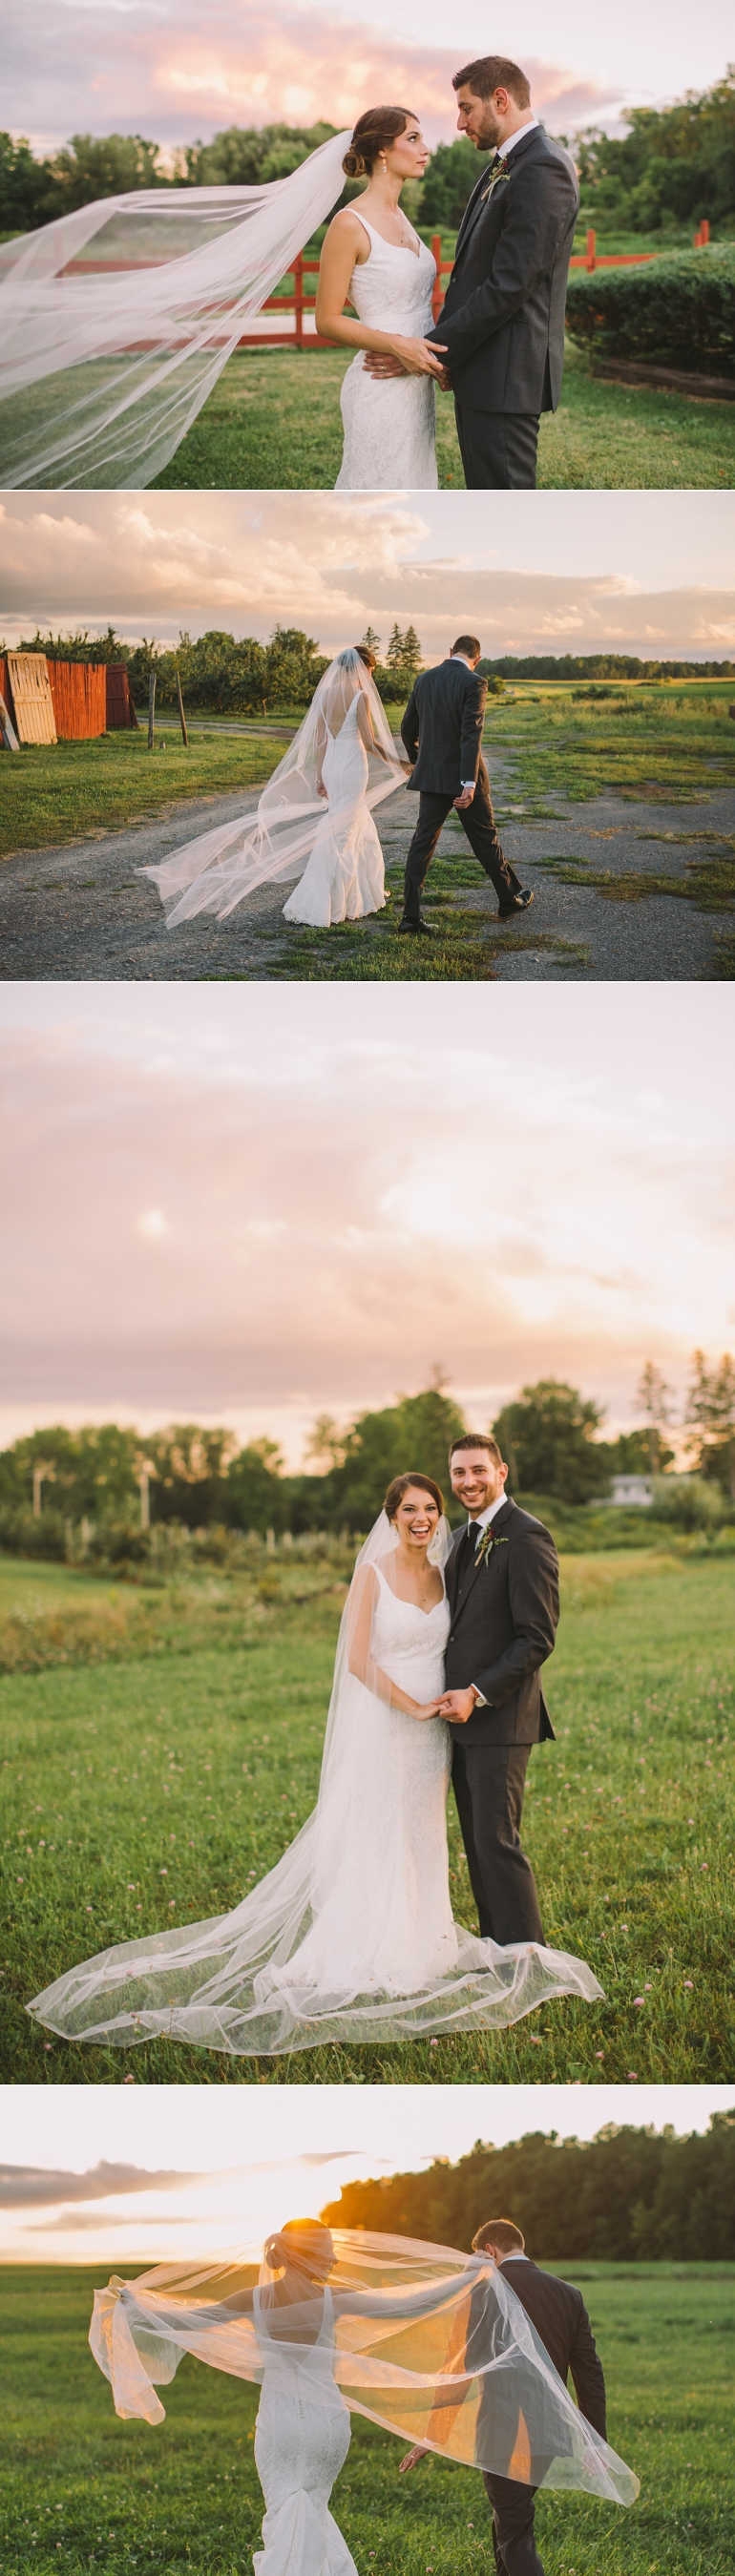 becker-farms-wedding-AJ-2015_0023